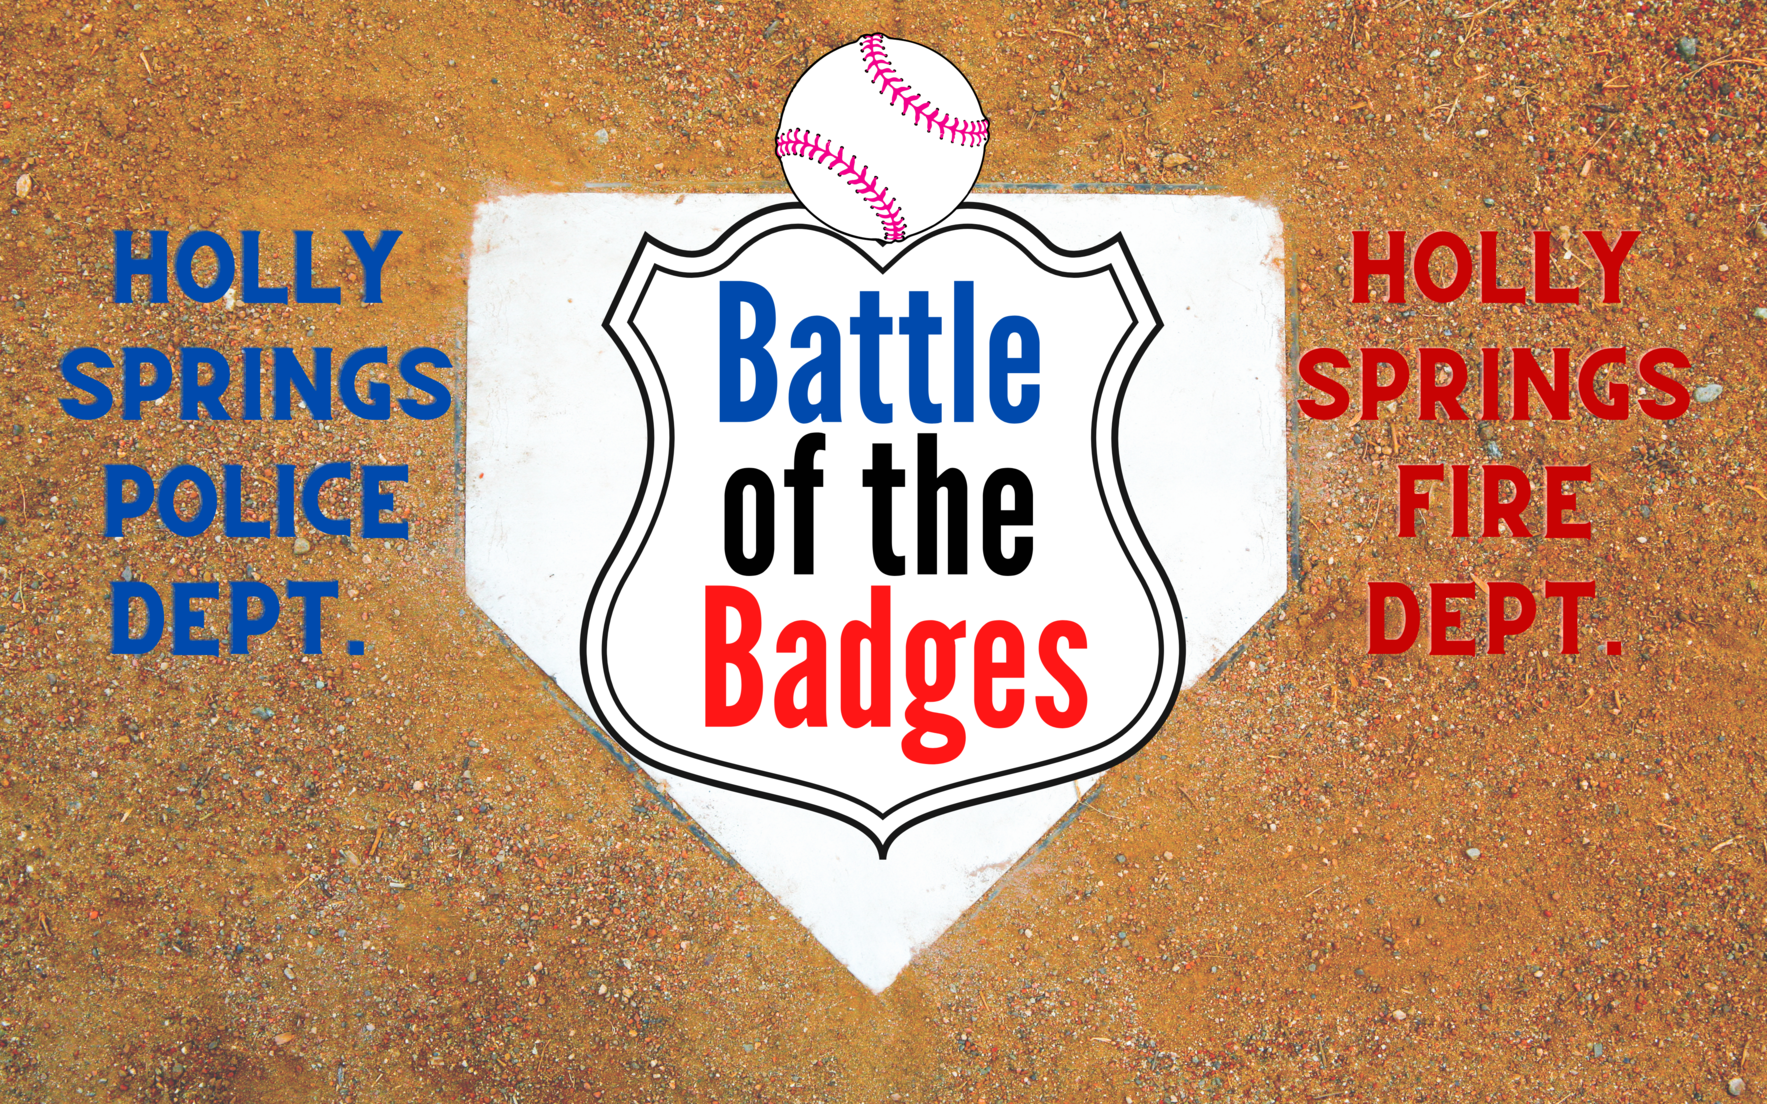 Holly Springs Battle of the Badges image